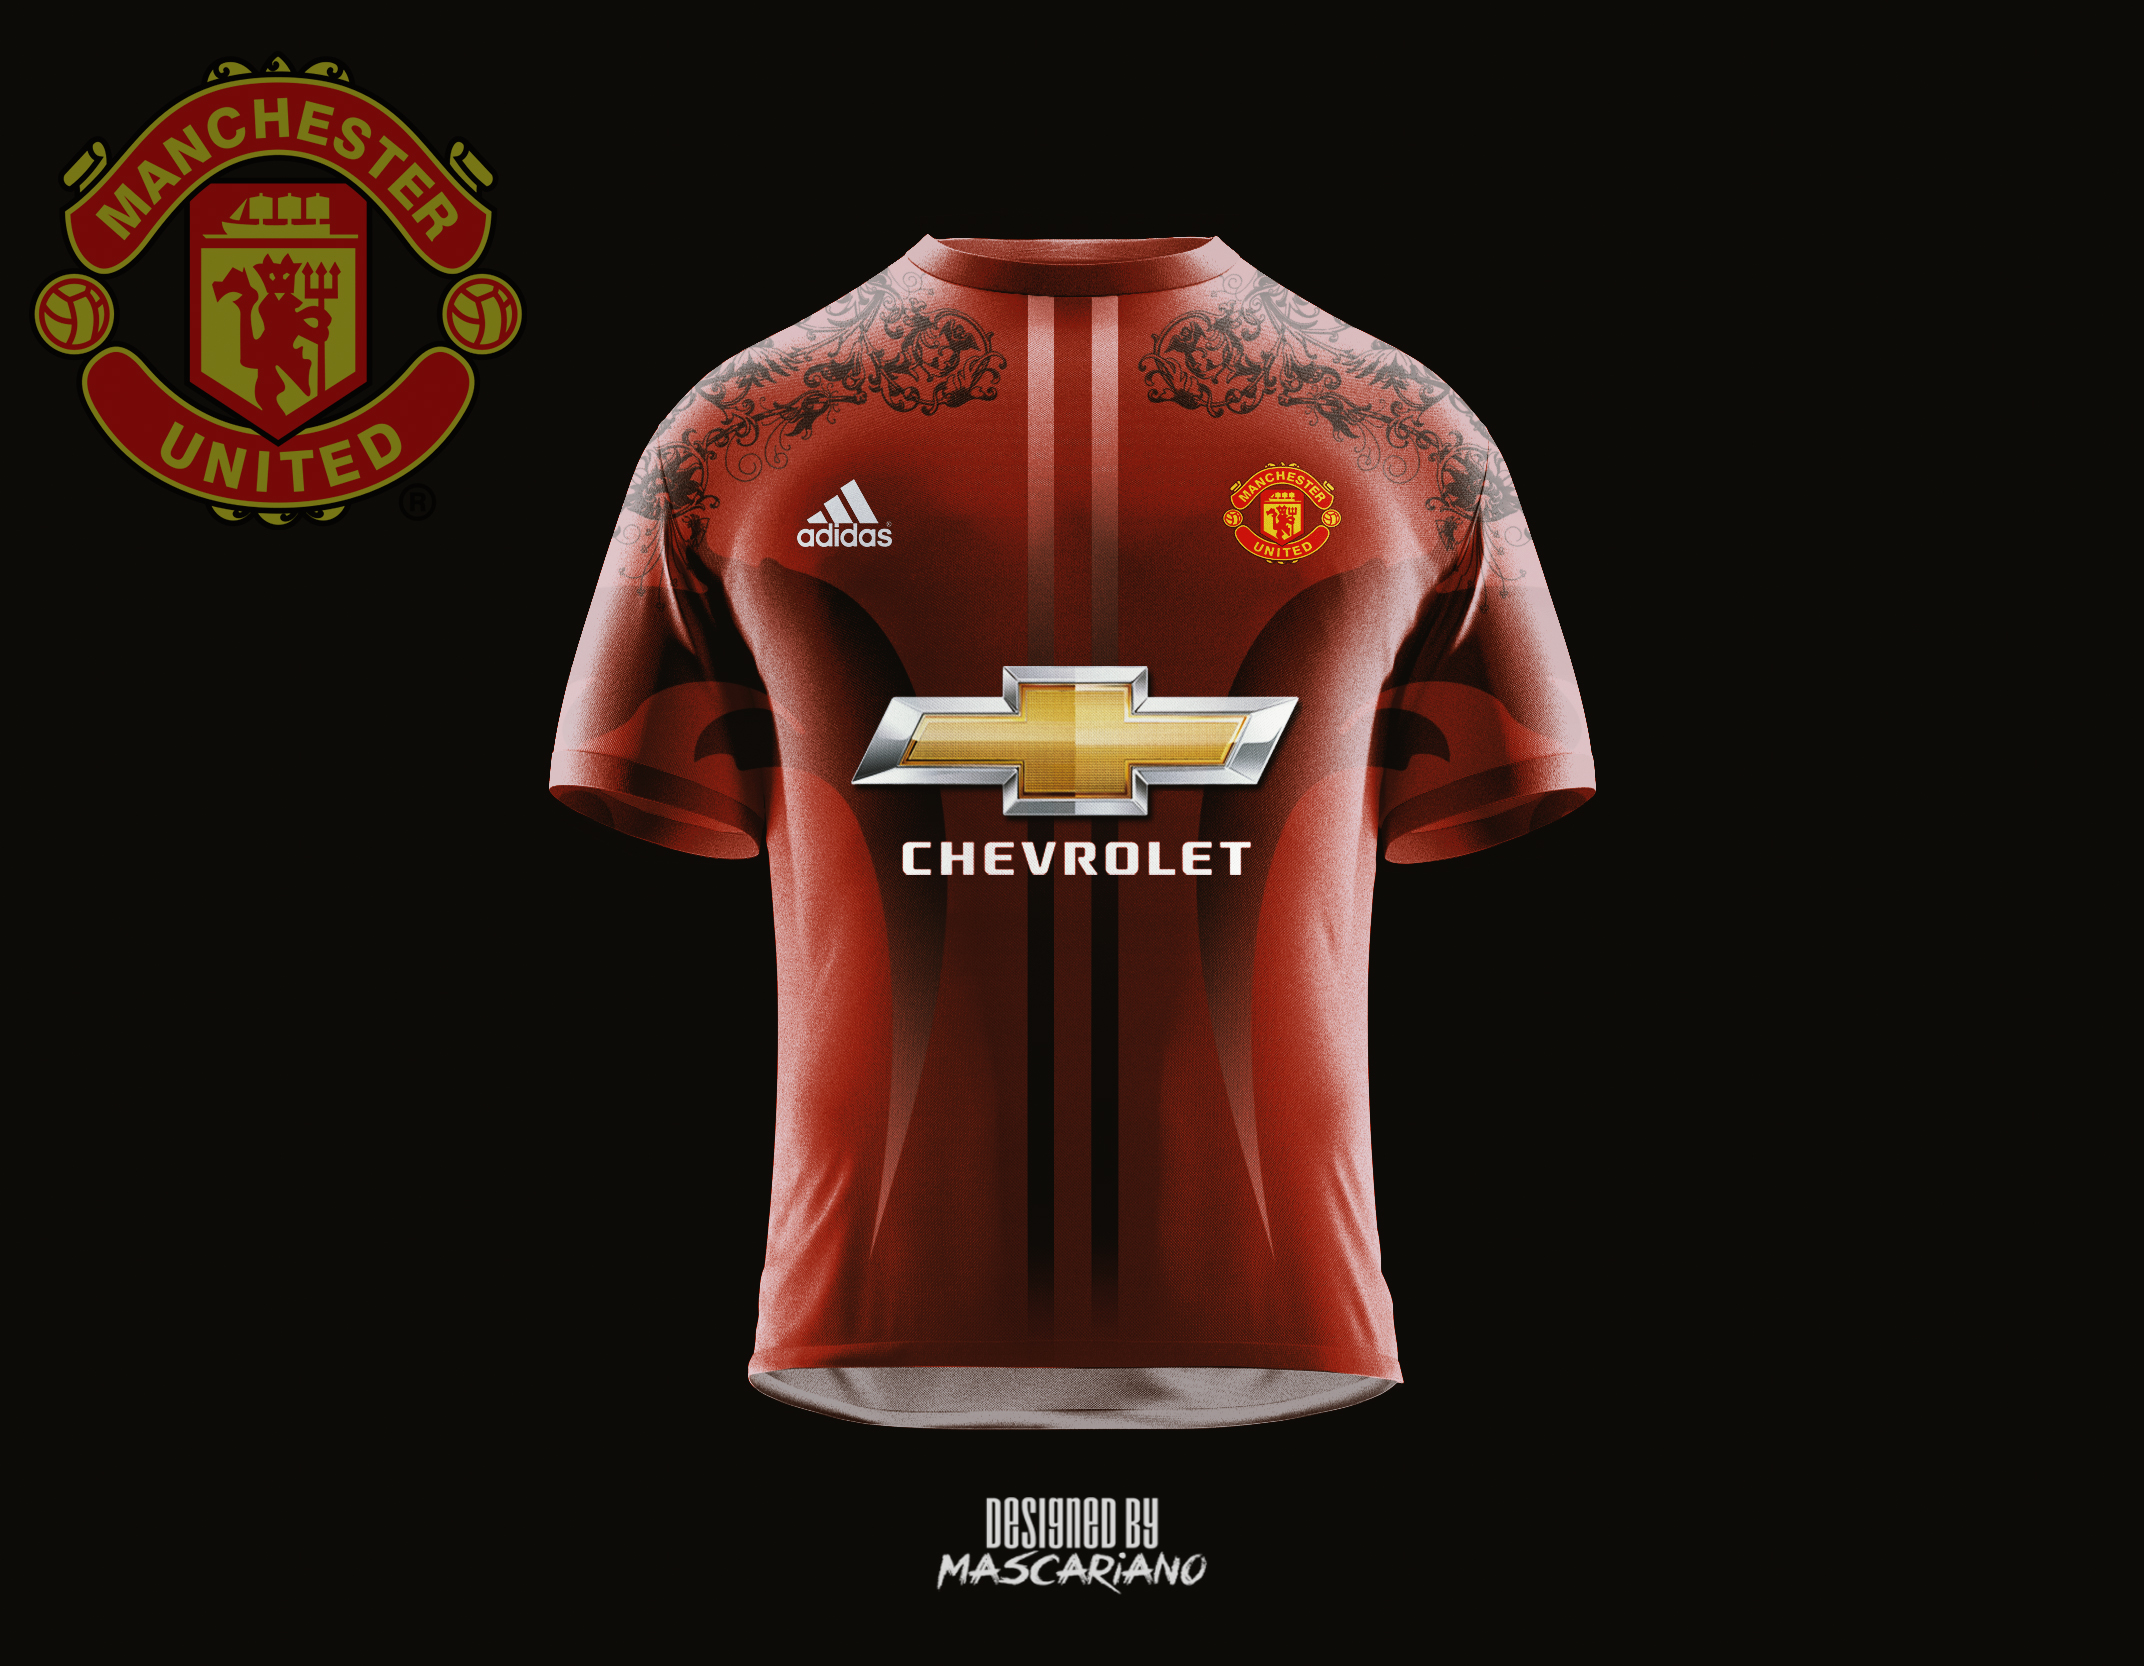 manchester united 2018 2019 concept kit by mascariano on deviantart manchester united 2018 2019 concept kit by mascariano on deviantart